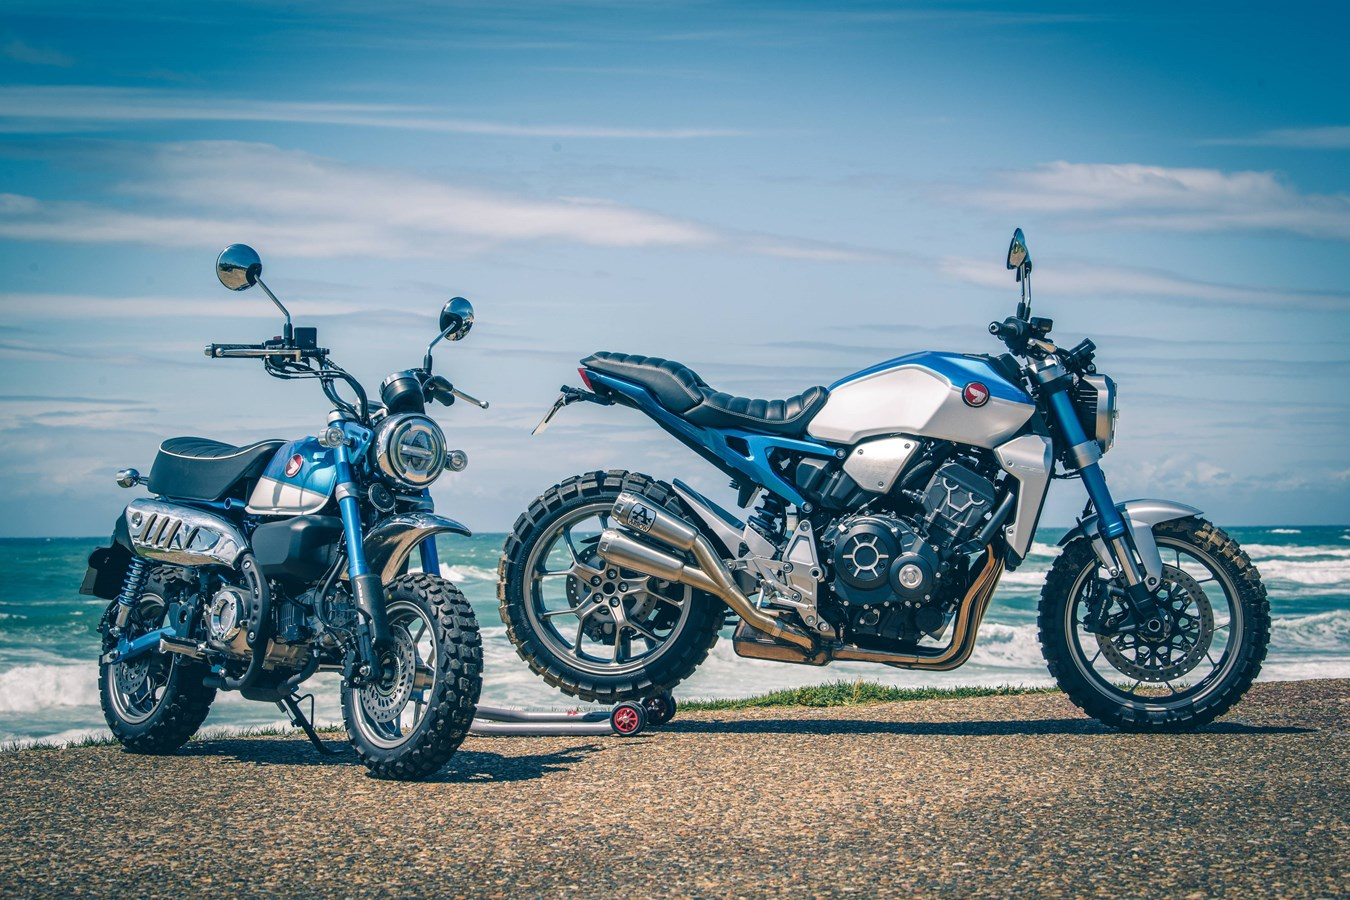 Honda Motor Europe marks 50 years of Honda Inline-Fours at Wheels & Waves